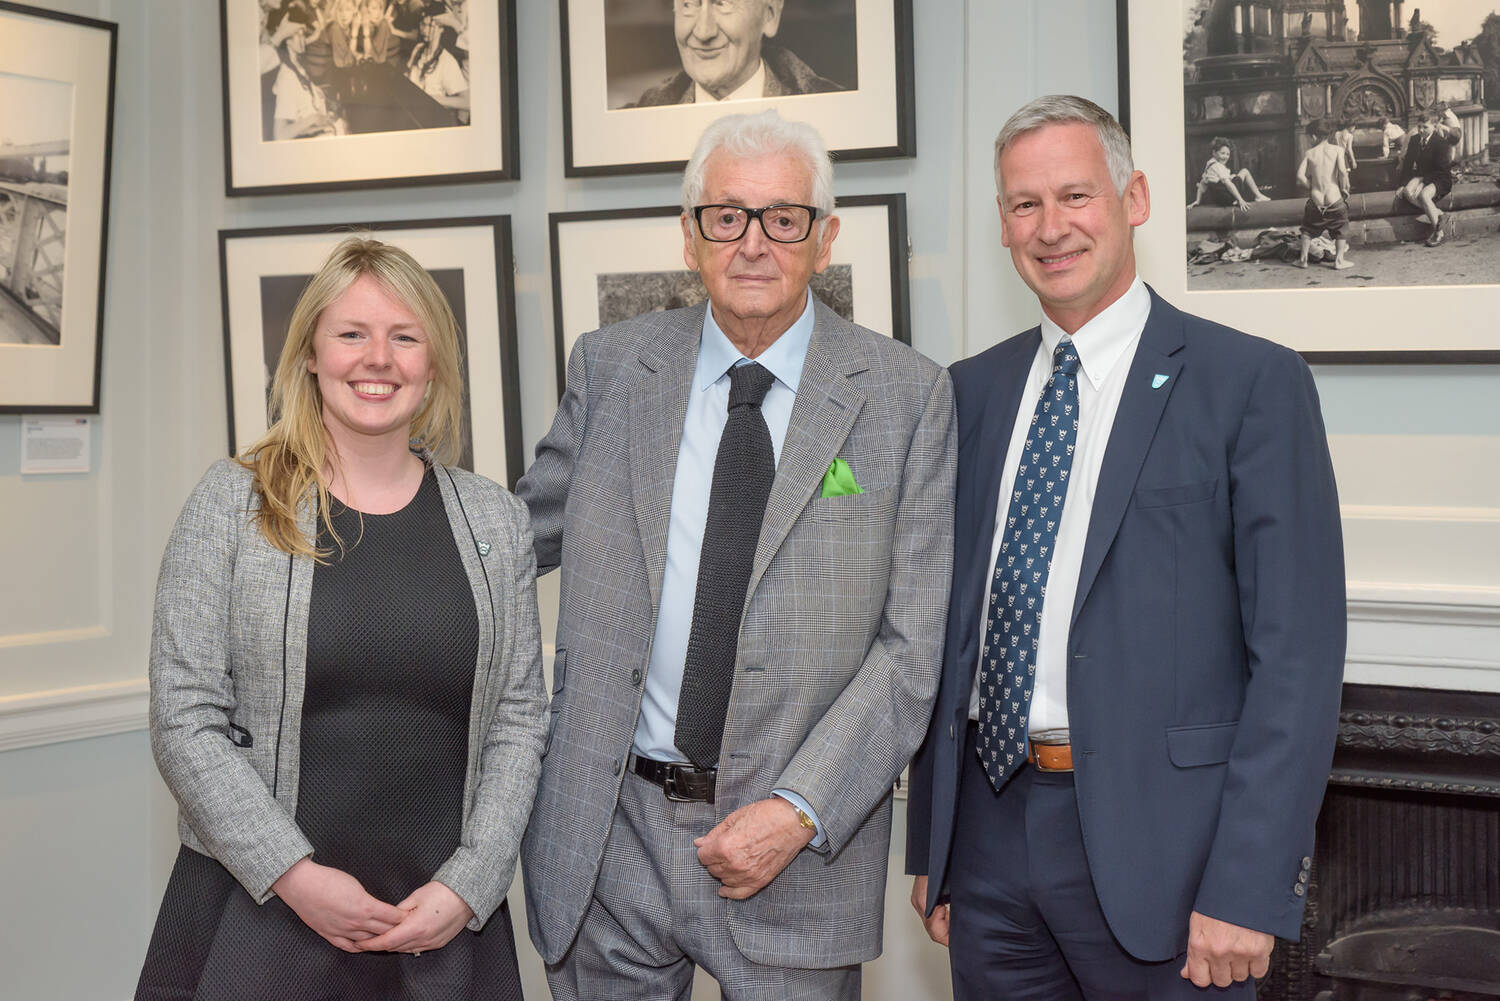 Operations Manager Karen Cornfield (L) and Chief Executive Simon Skinner (R) welcome Harry Benson to Pollok House.